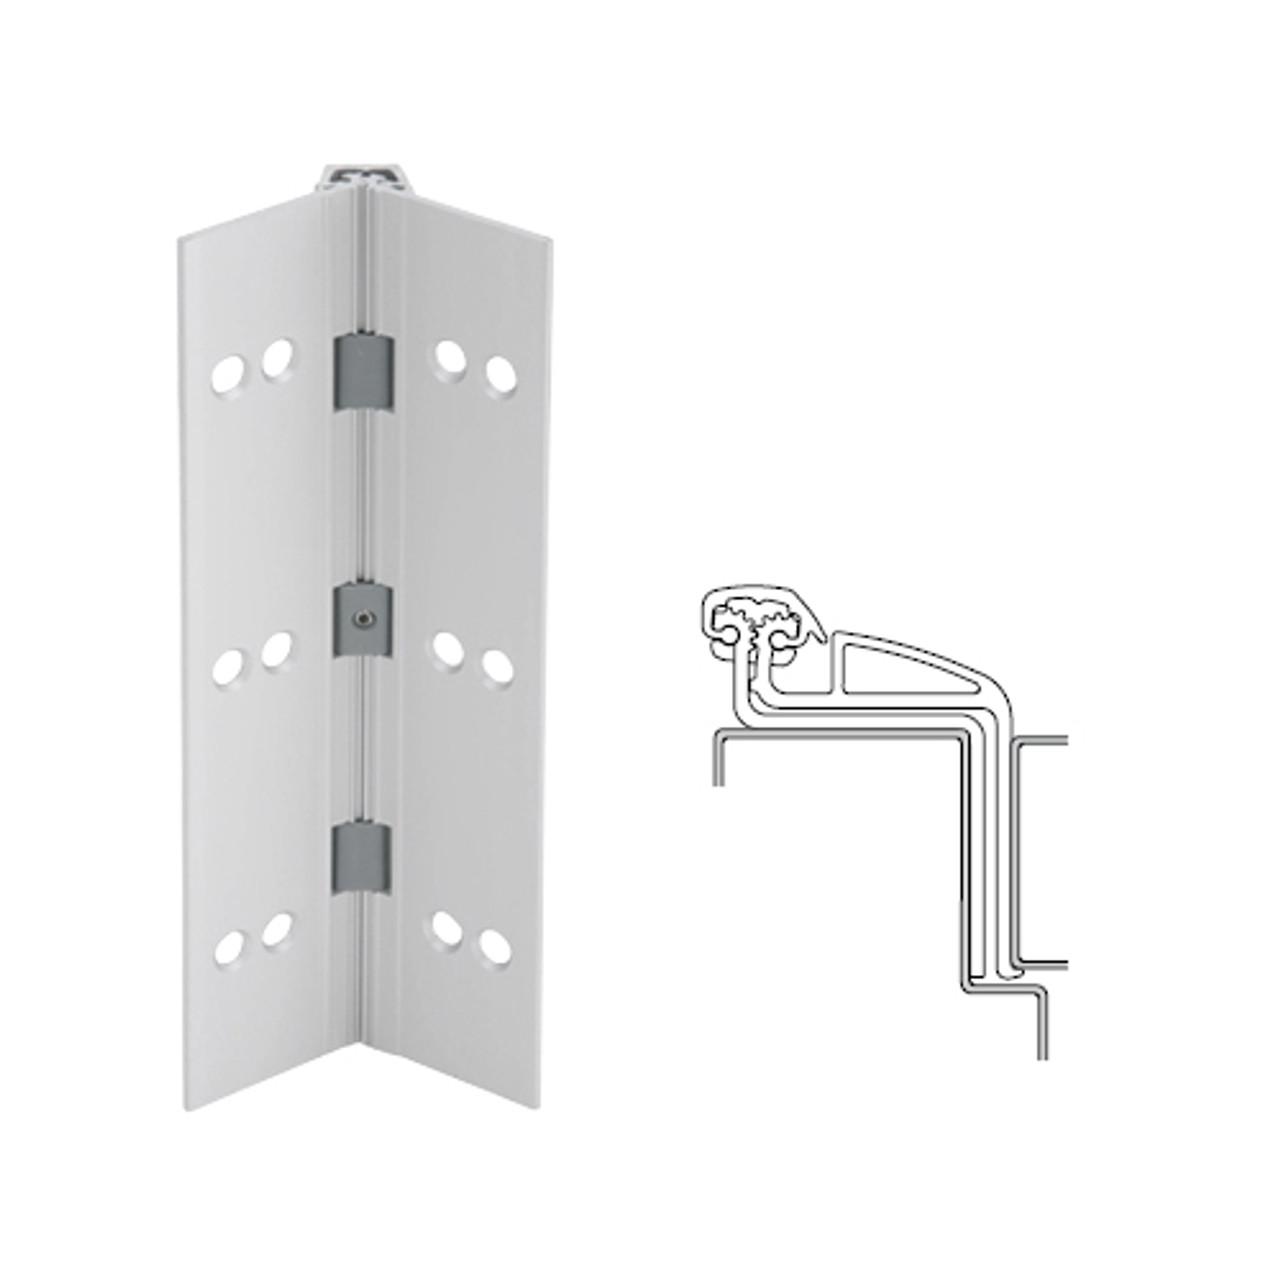 041XY-US28-95-TFWD IVES Full Mortise Continuous Geared Hinges with Thread Forming Screws in Satin Aluminum